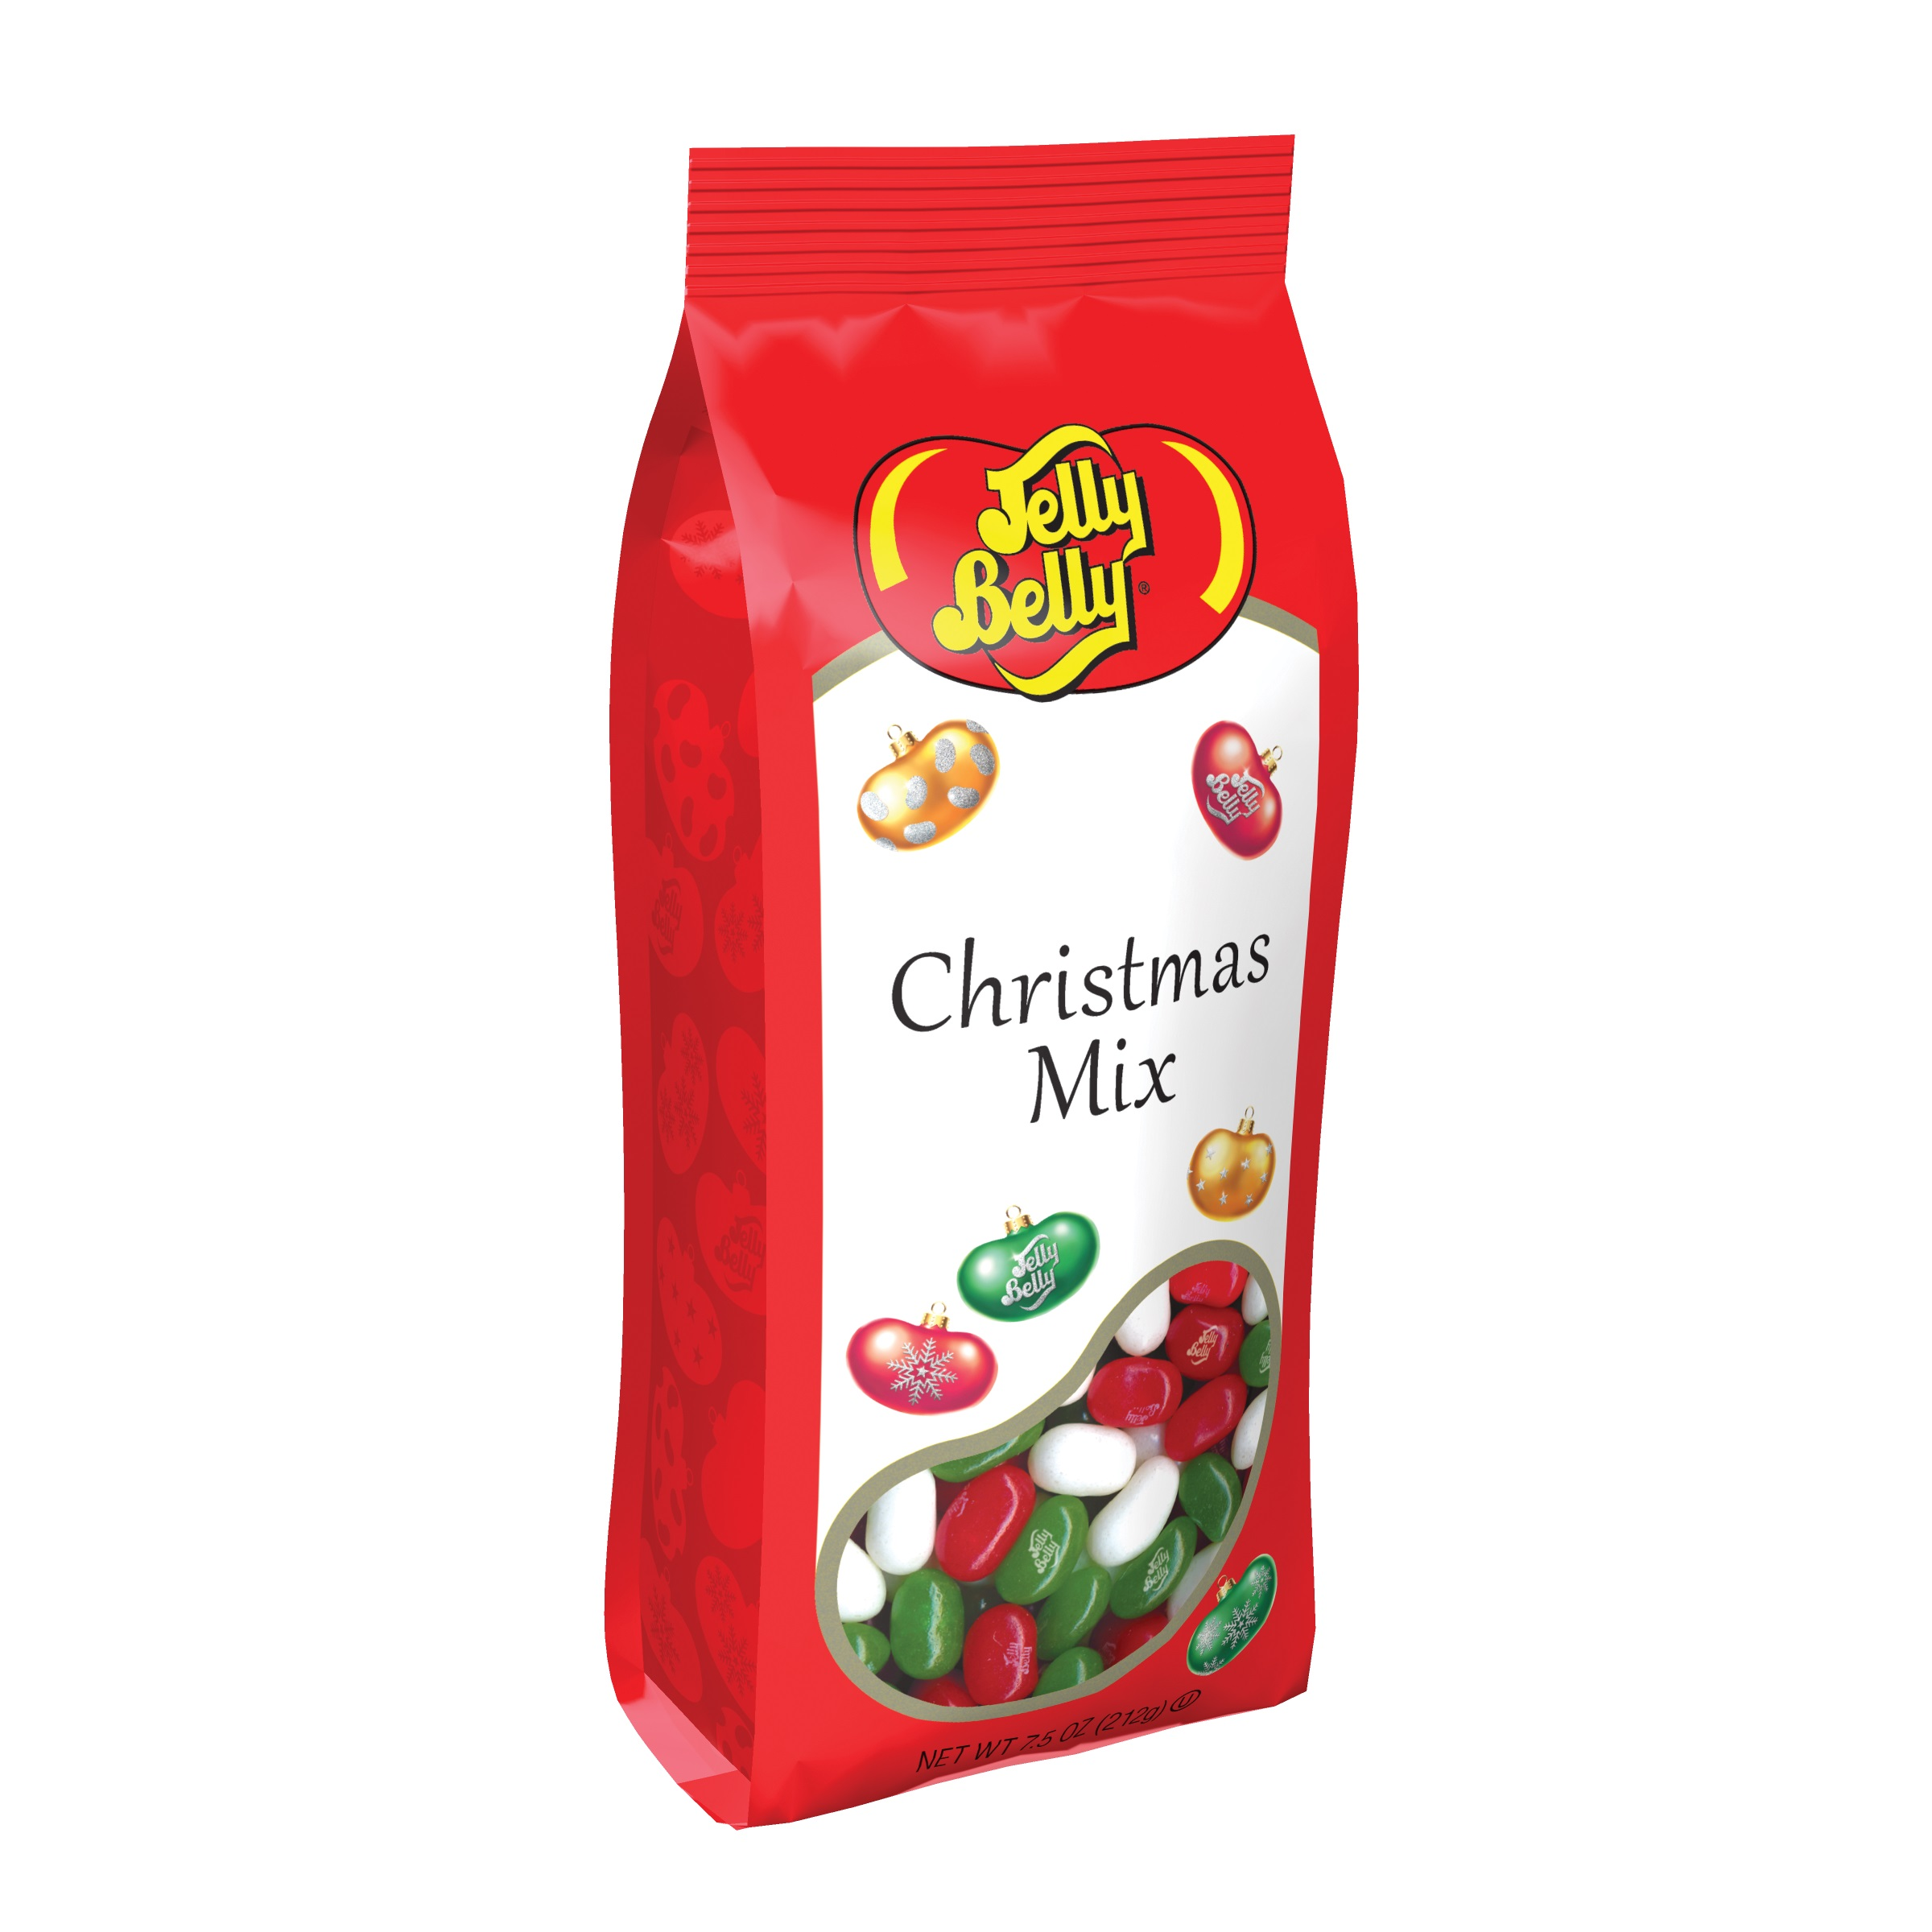 (G) 7.5 OZ JB XMAS MIX  BAGS -12 CT